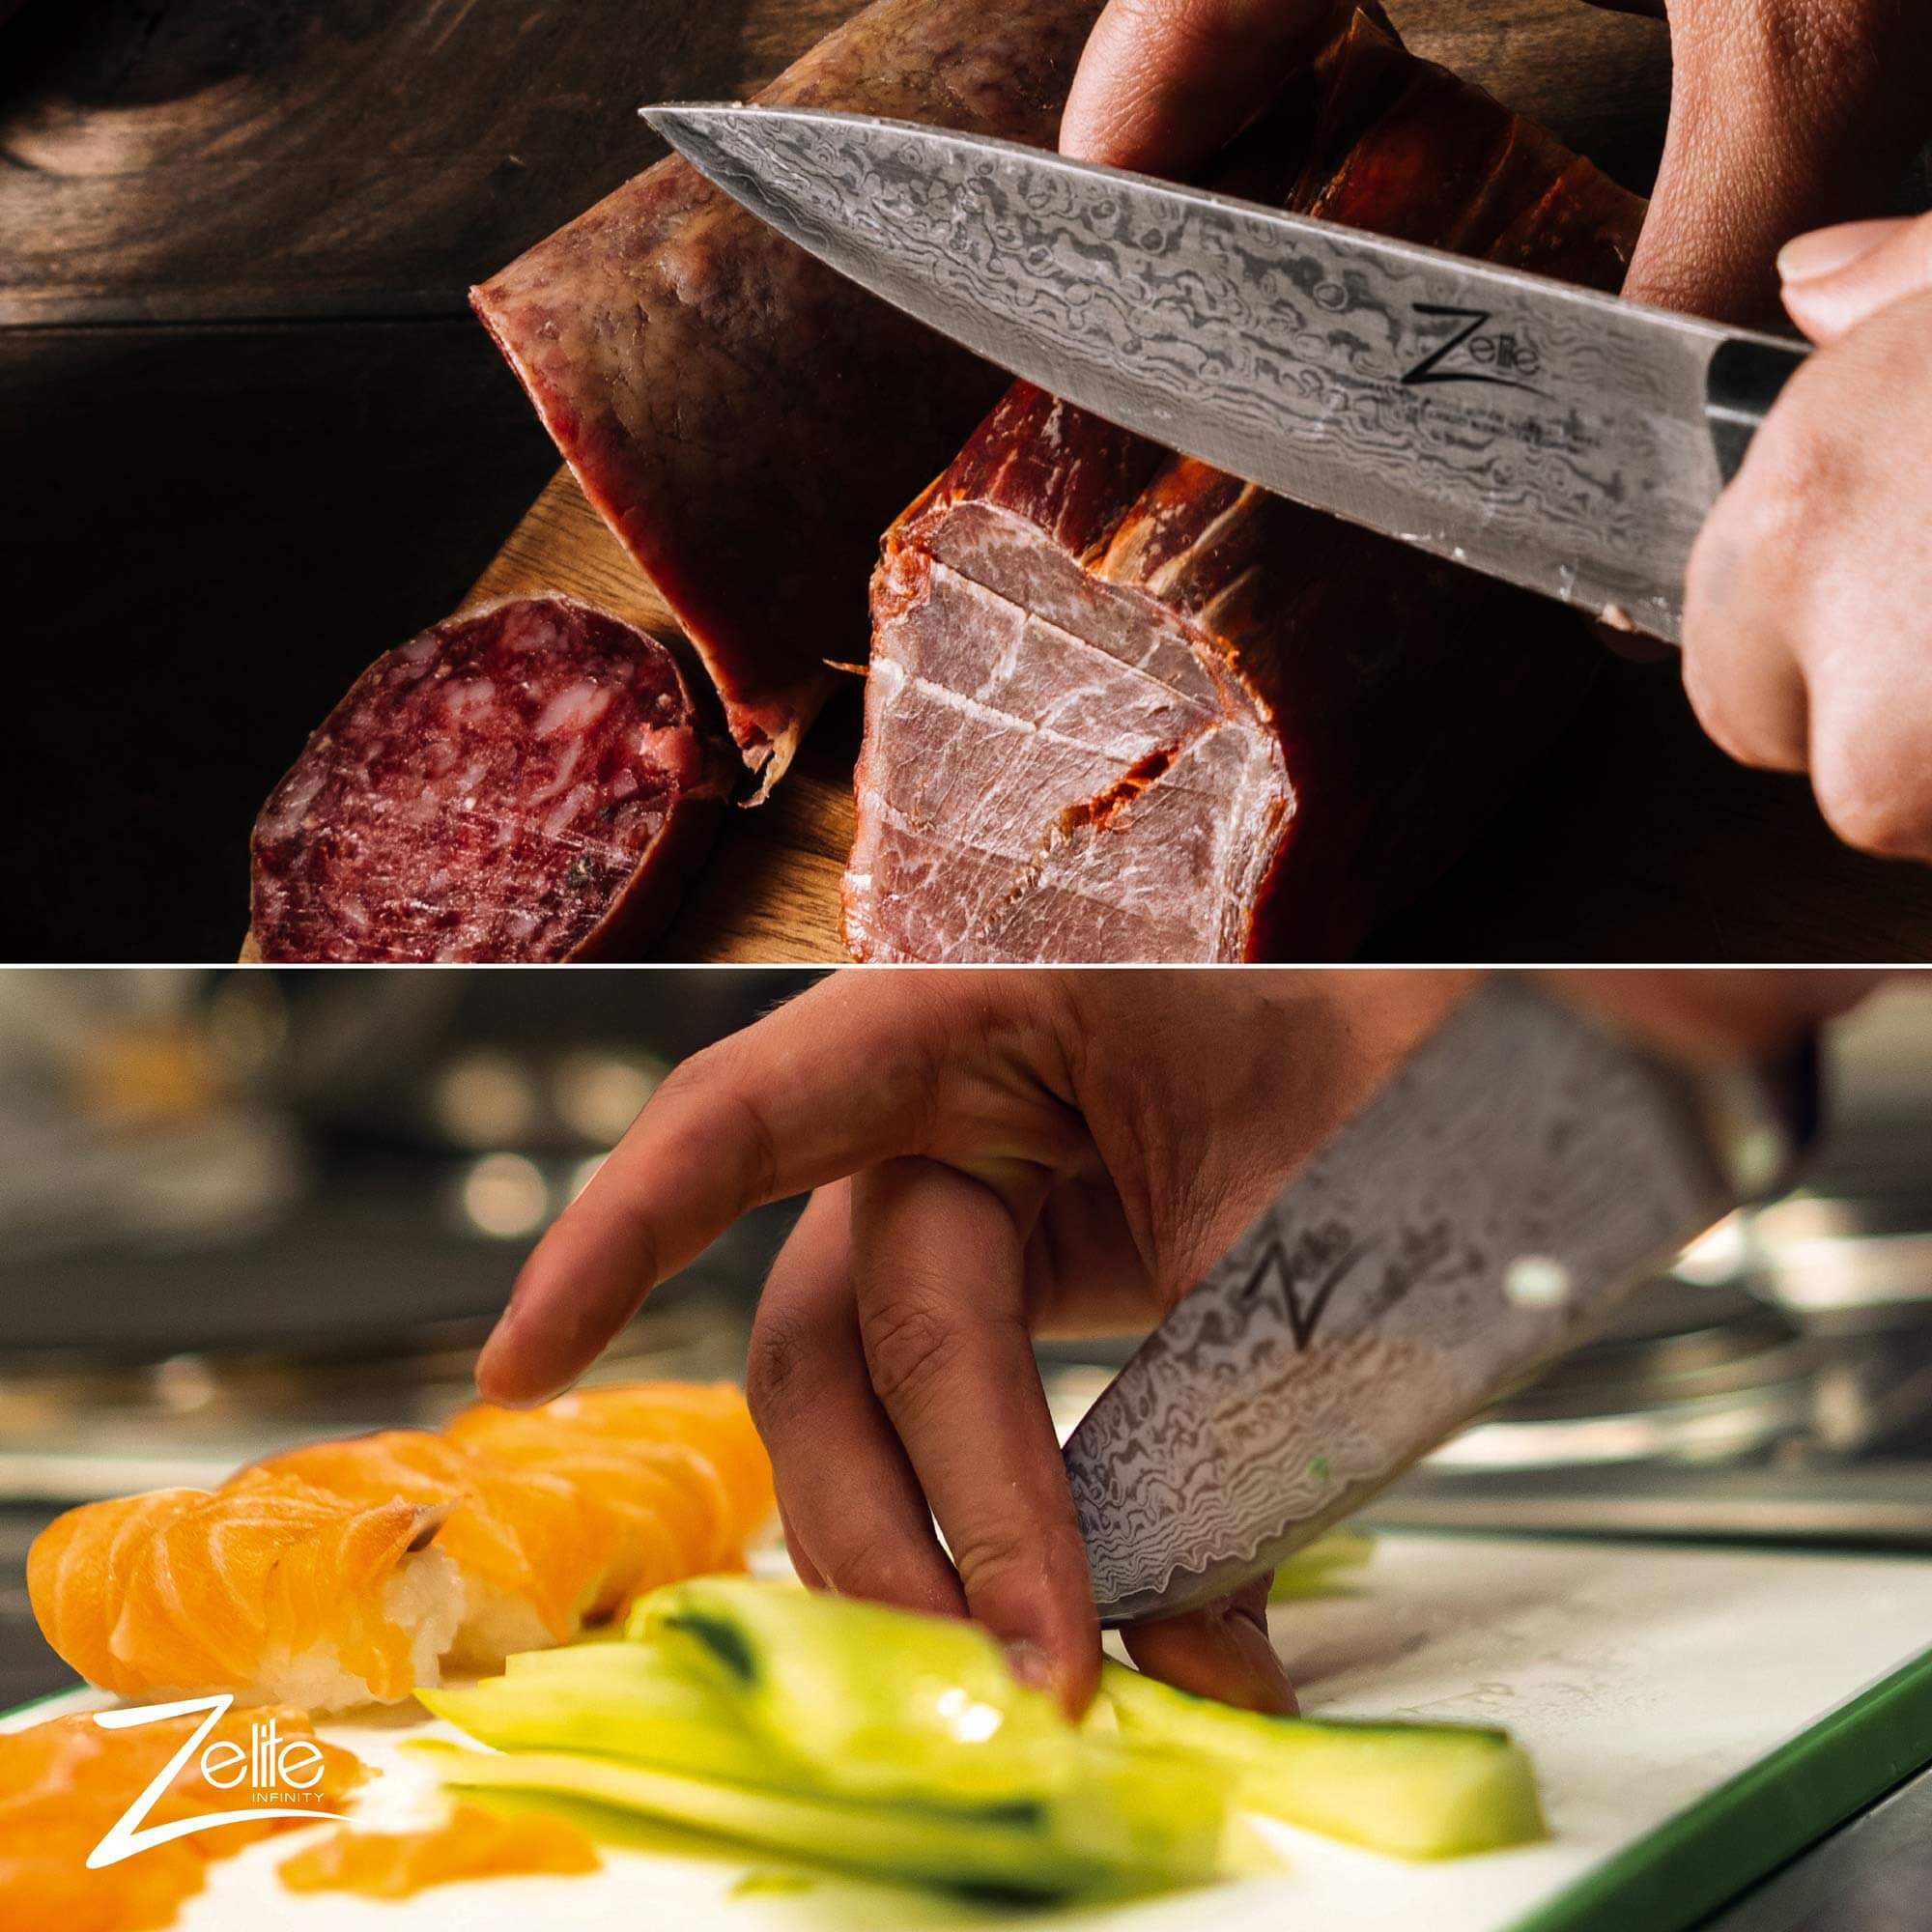 Zelite Infinity Chef Knife 8 Inch, Best Japanese chef knives, best knifes